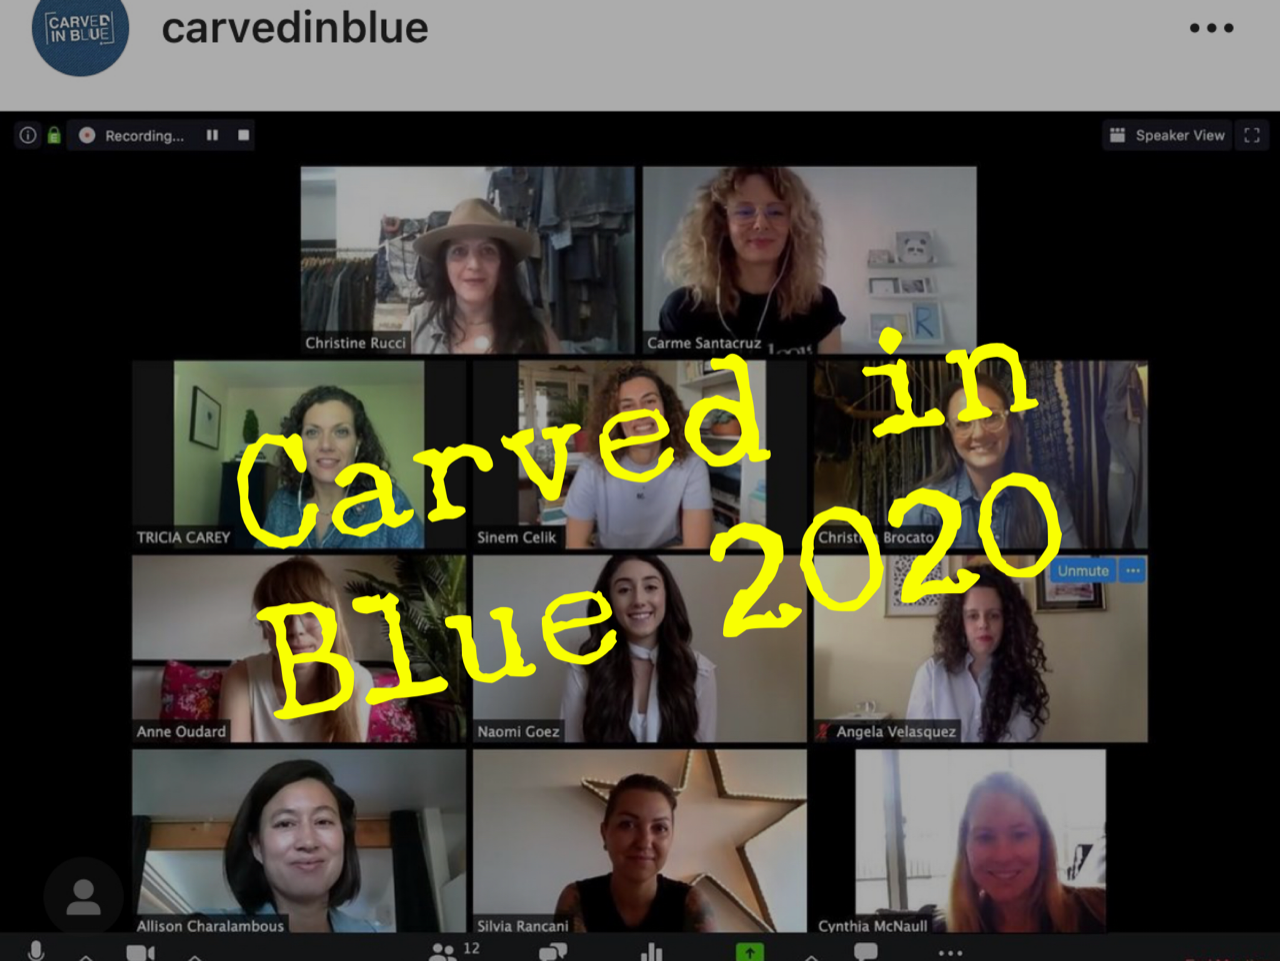 Carved in Blue 2020